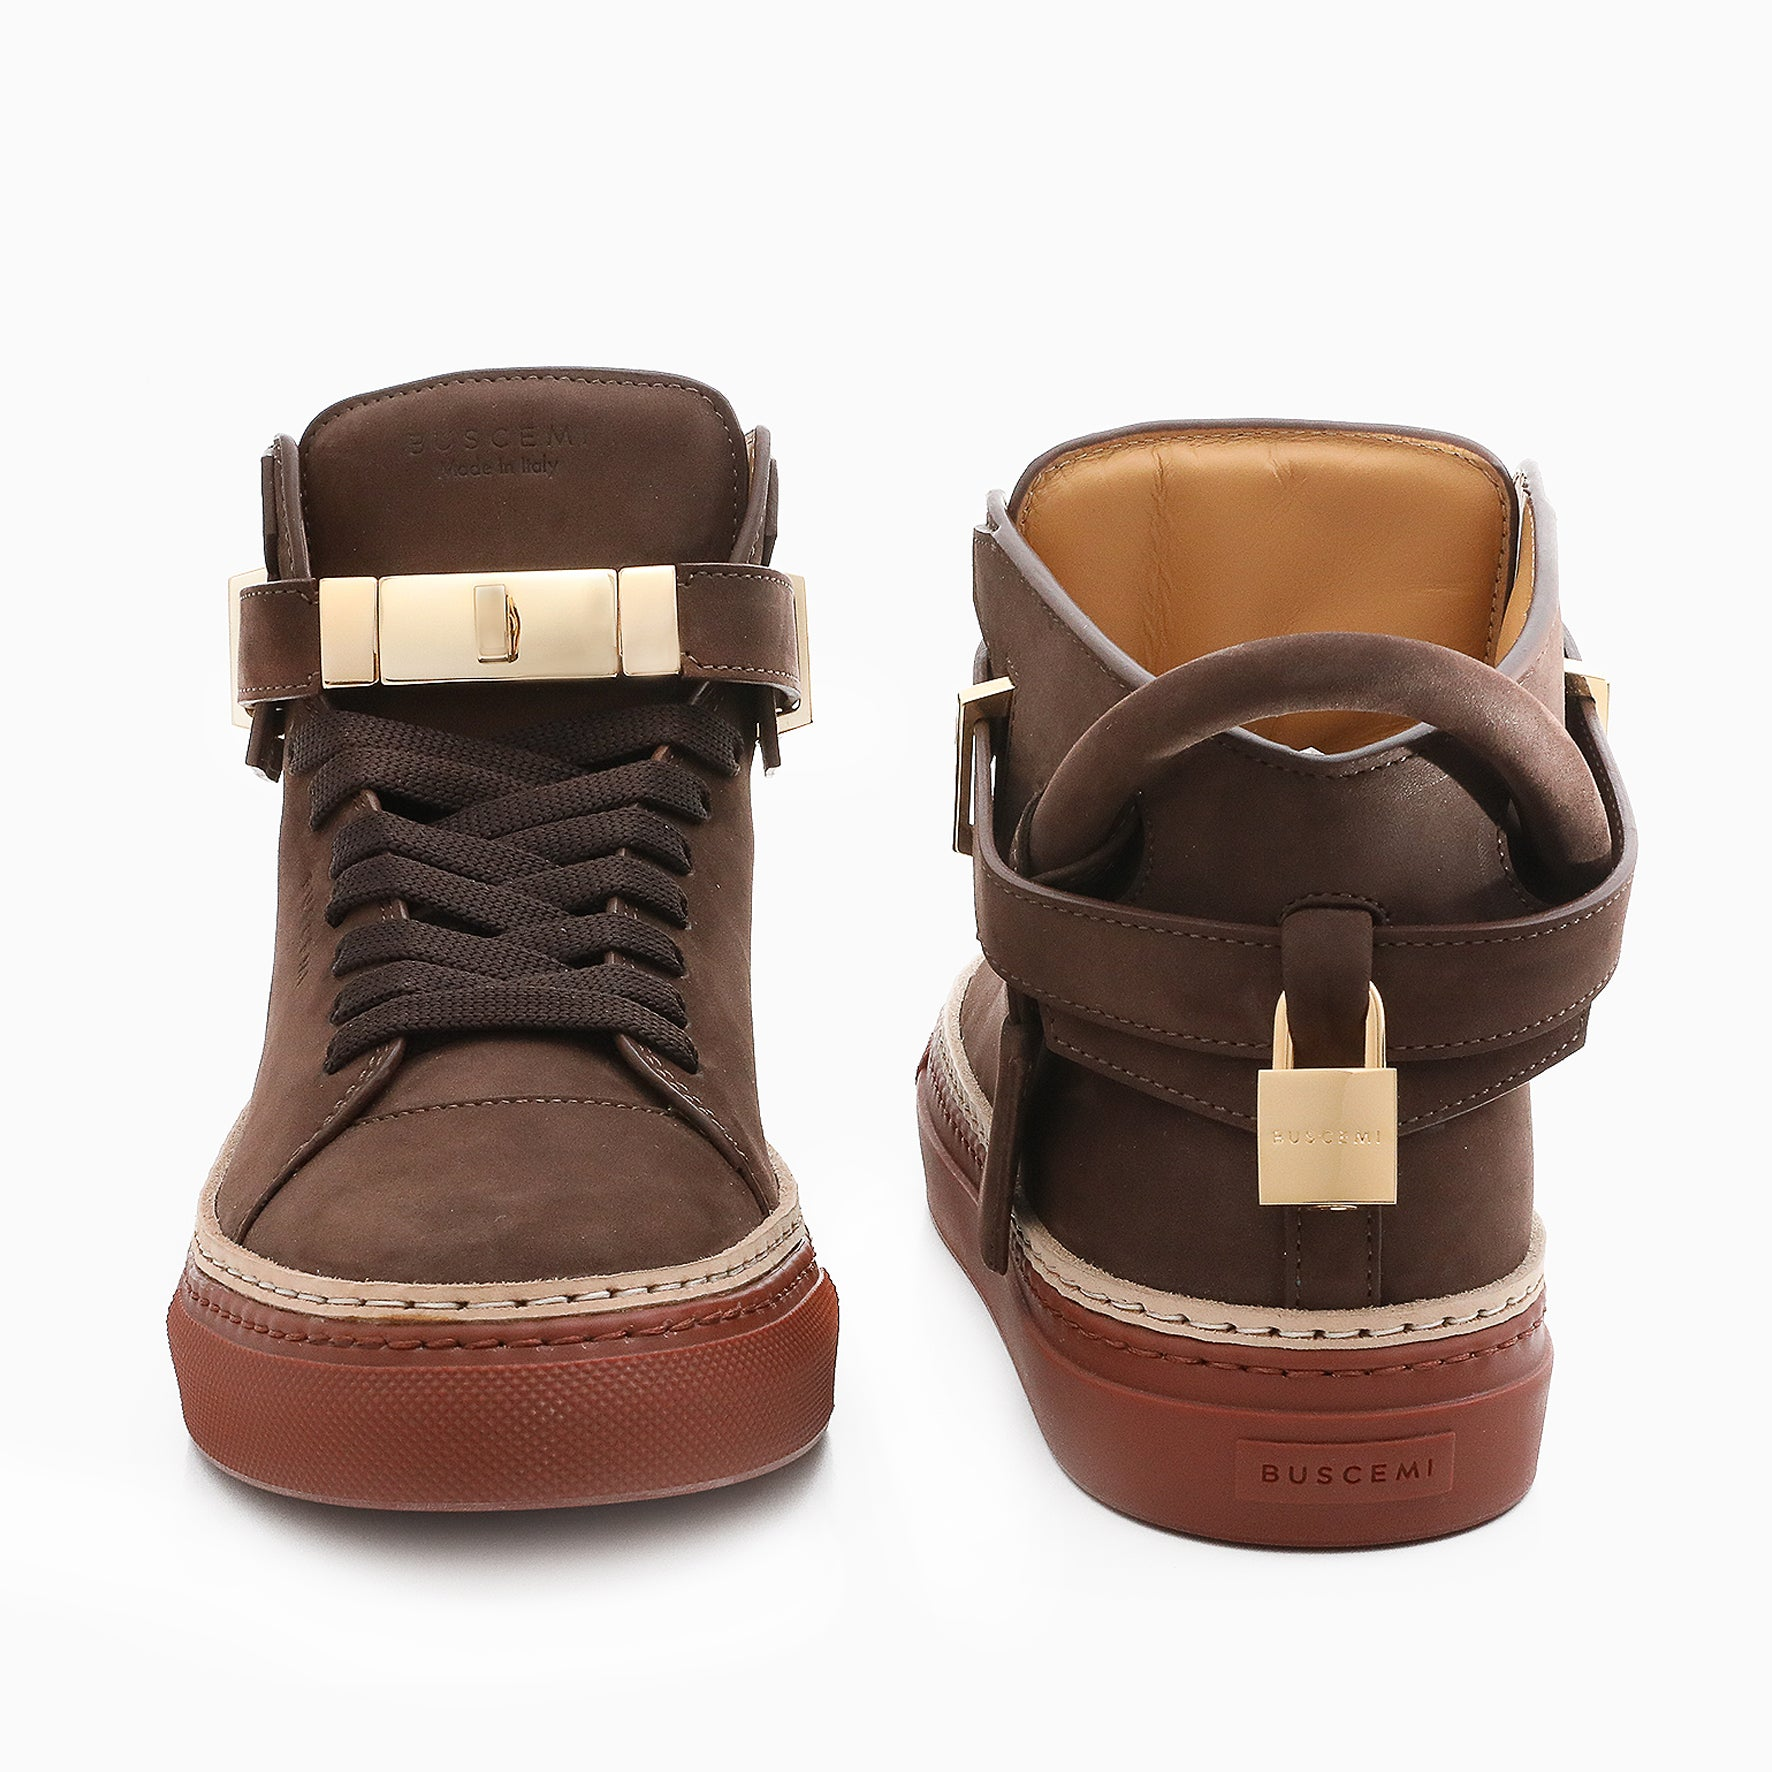 100MM Nubuk | Chocolate-Buscemi